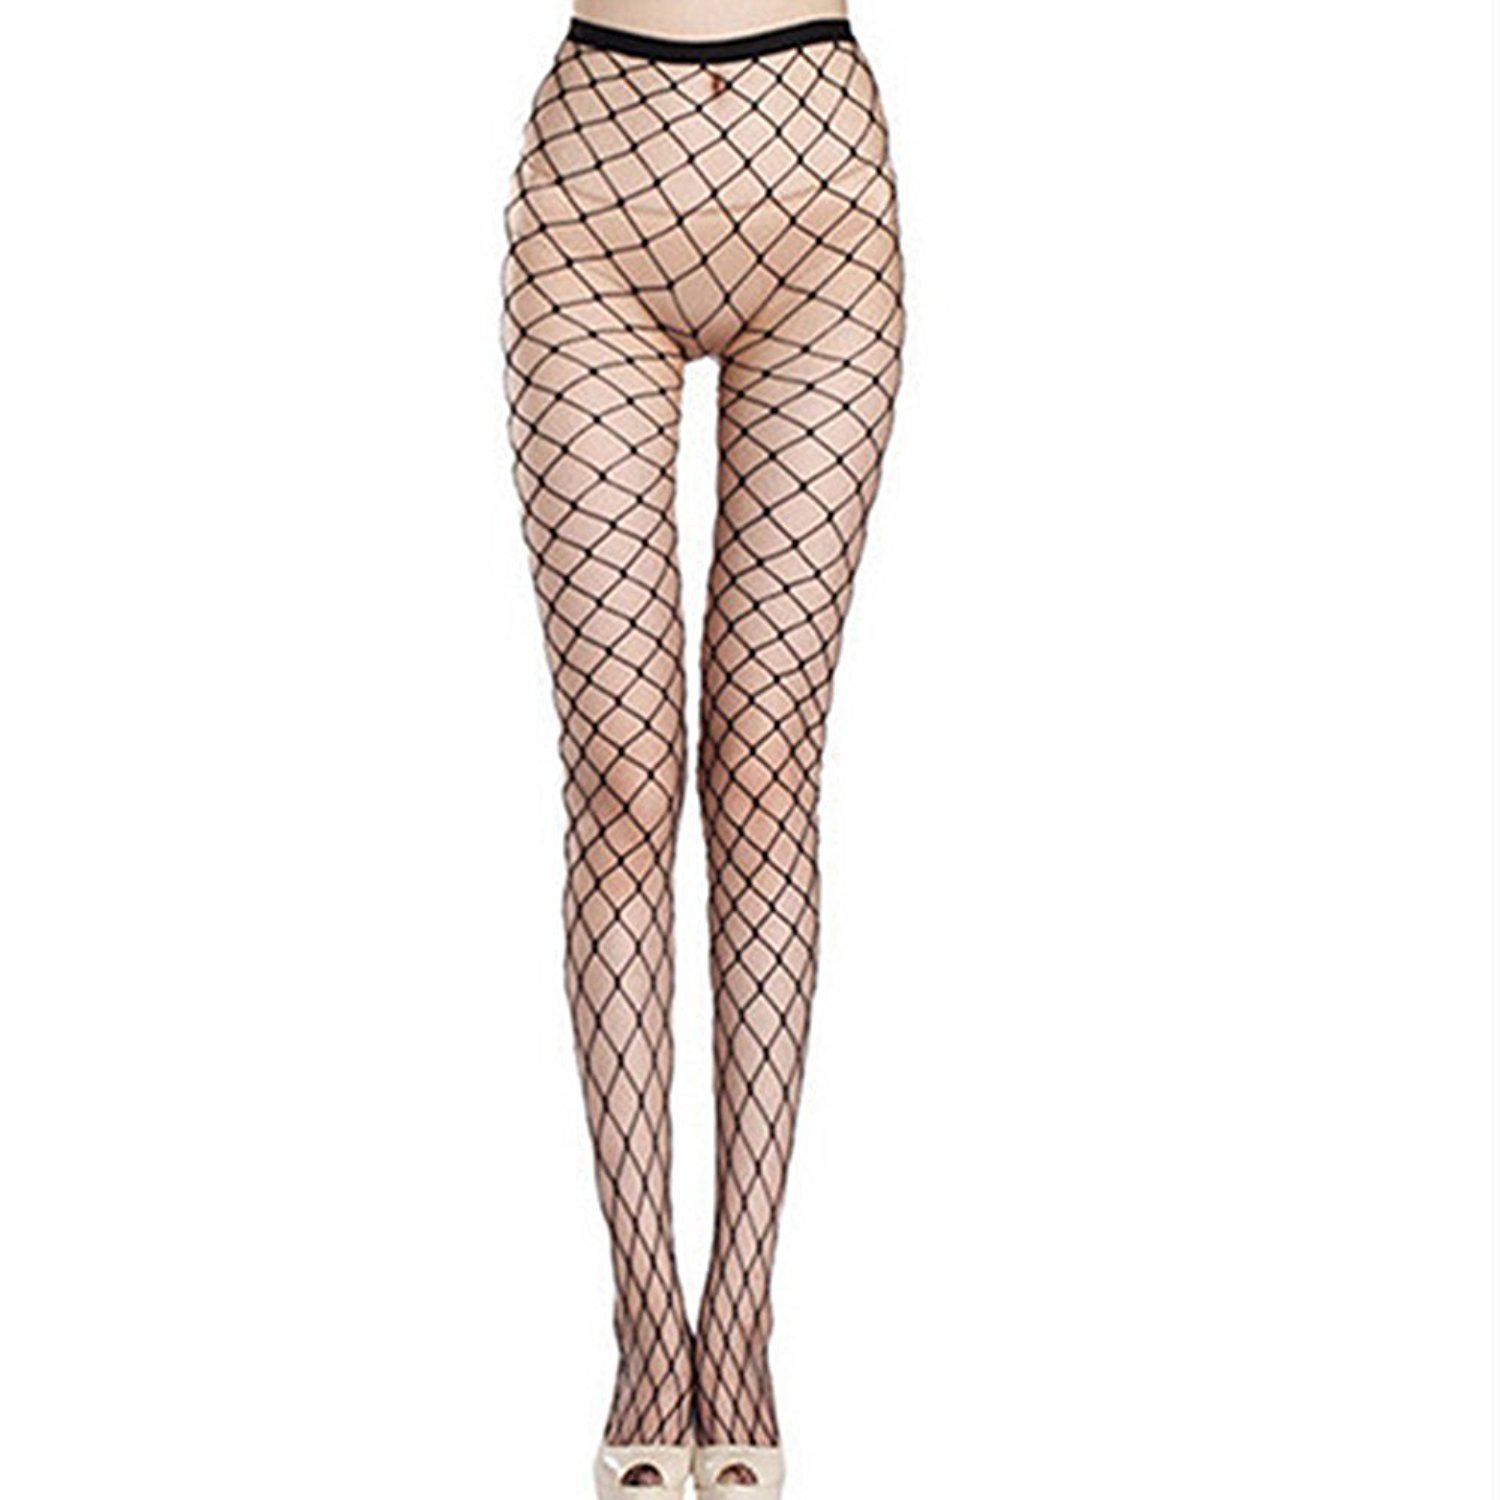 ce0bc9ea9a5 Get Quotations · JYS Women Sexy Fishnet Hollow Pantyhose Punk Stockings  Stretchy Tights